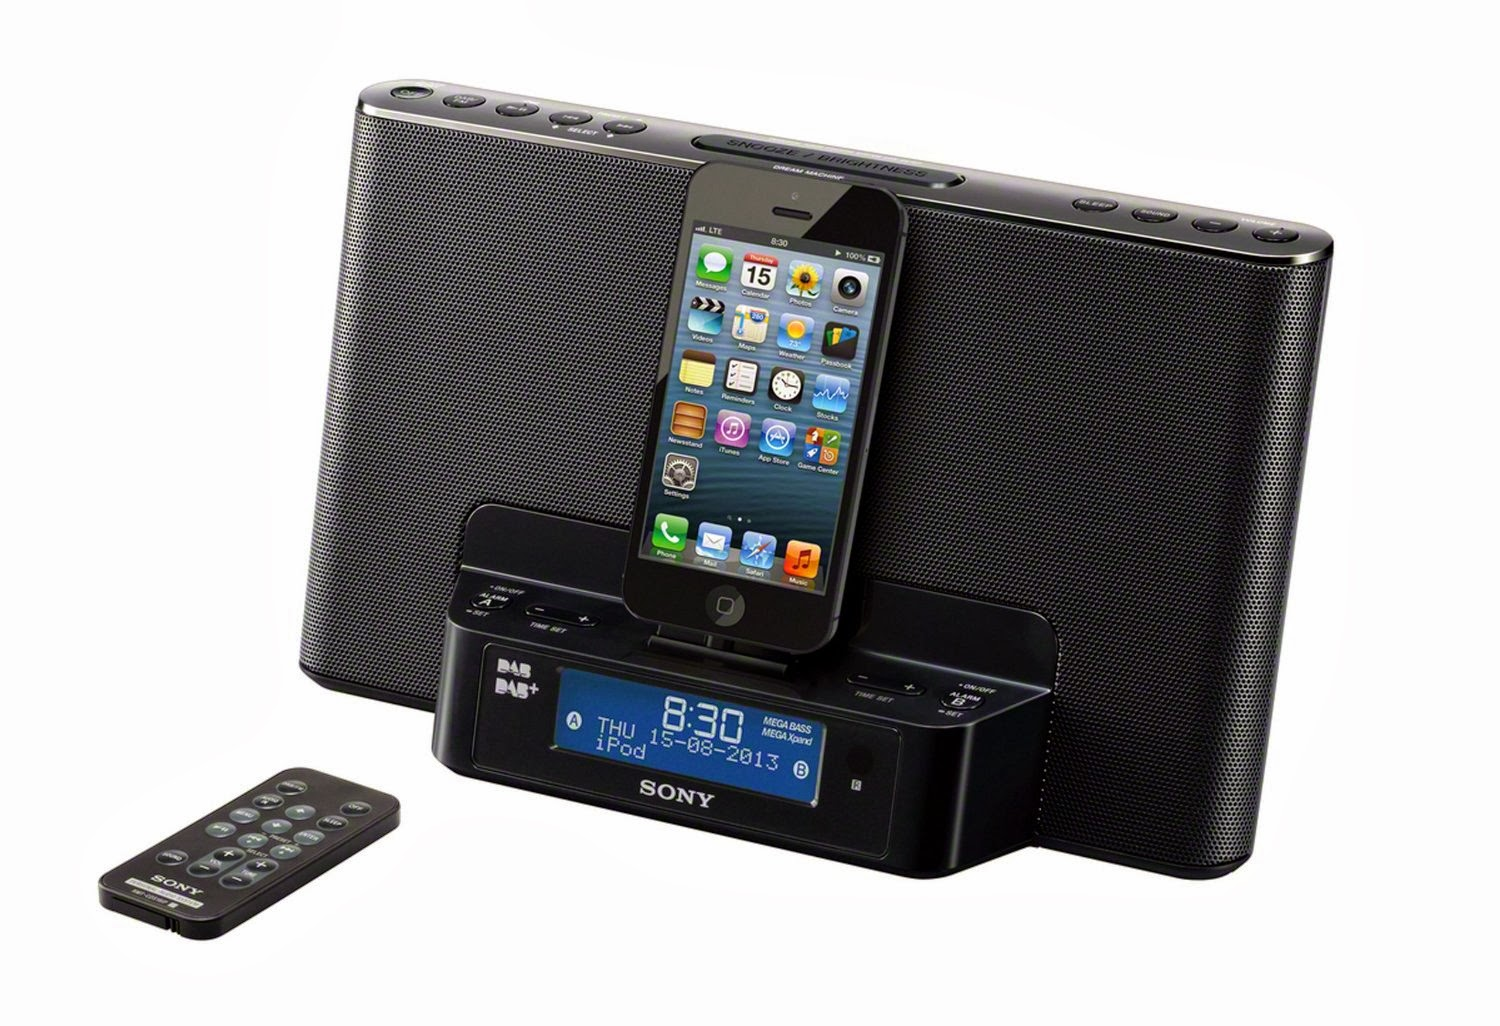 sony dab radio speaker charging docking station iphone 6 plus iphone 6 5s 5c 5 ipod touch 5. Black Bedroom Furniture Sets. Home Design Ideas